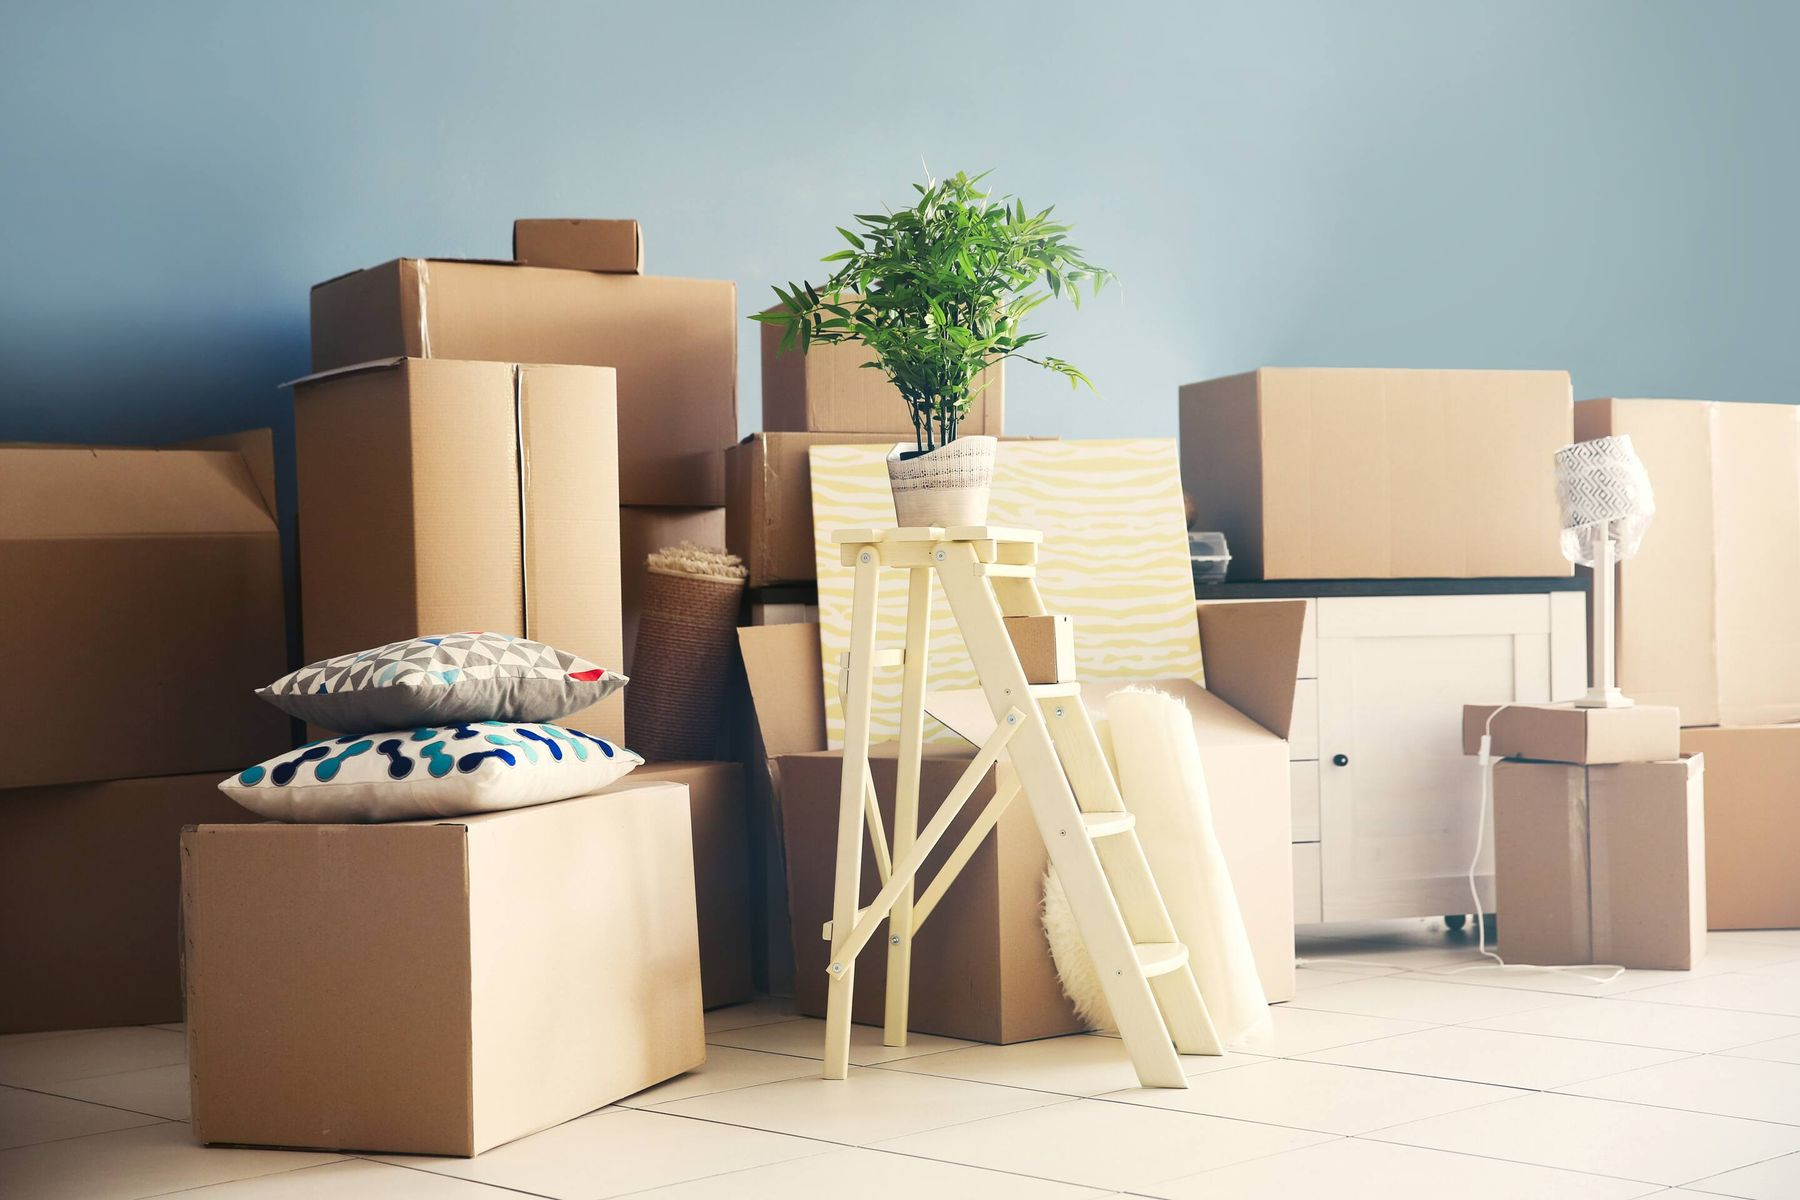 Cardboard boxes, pillows and potted plant on blue background wall